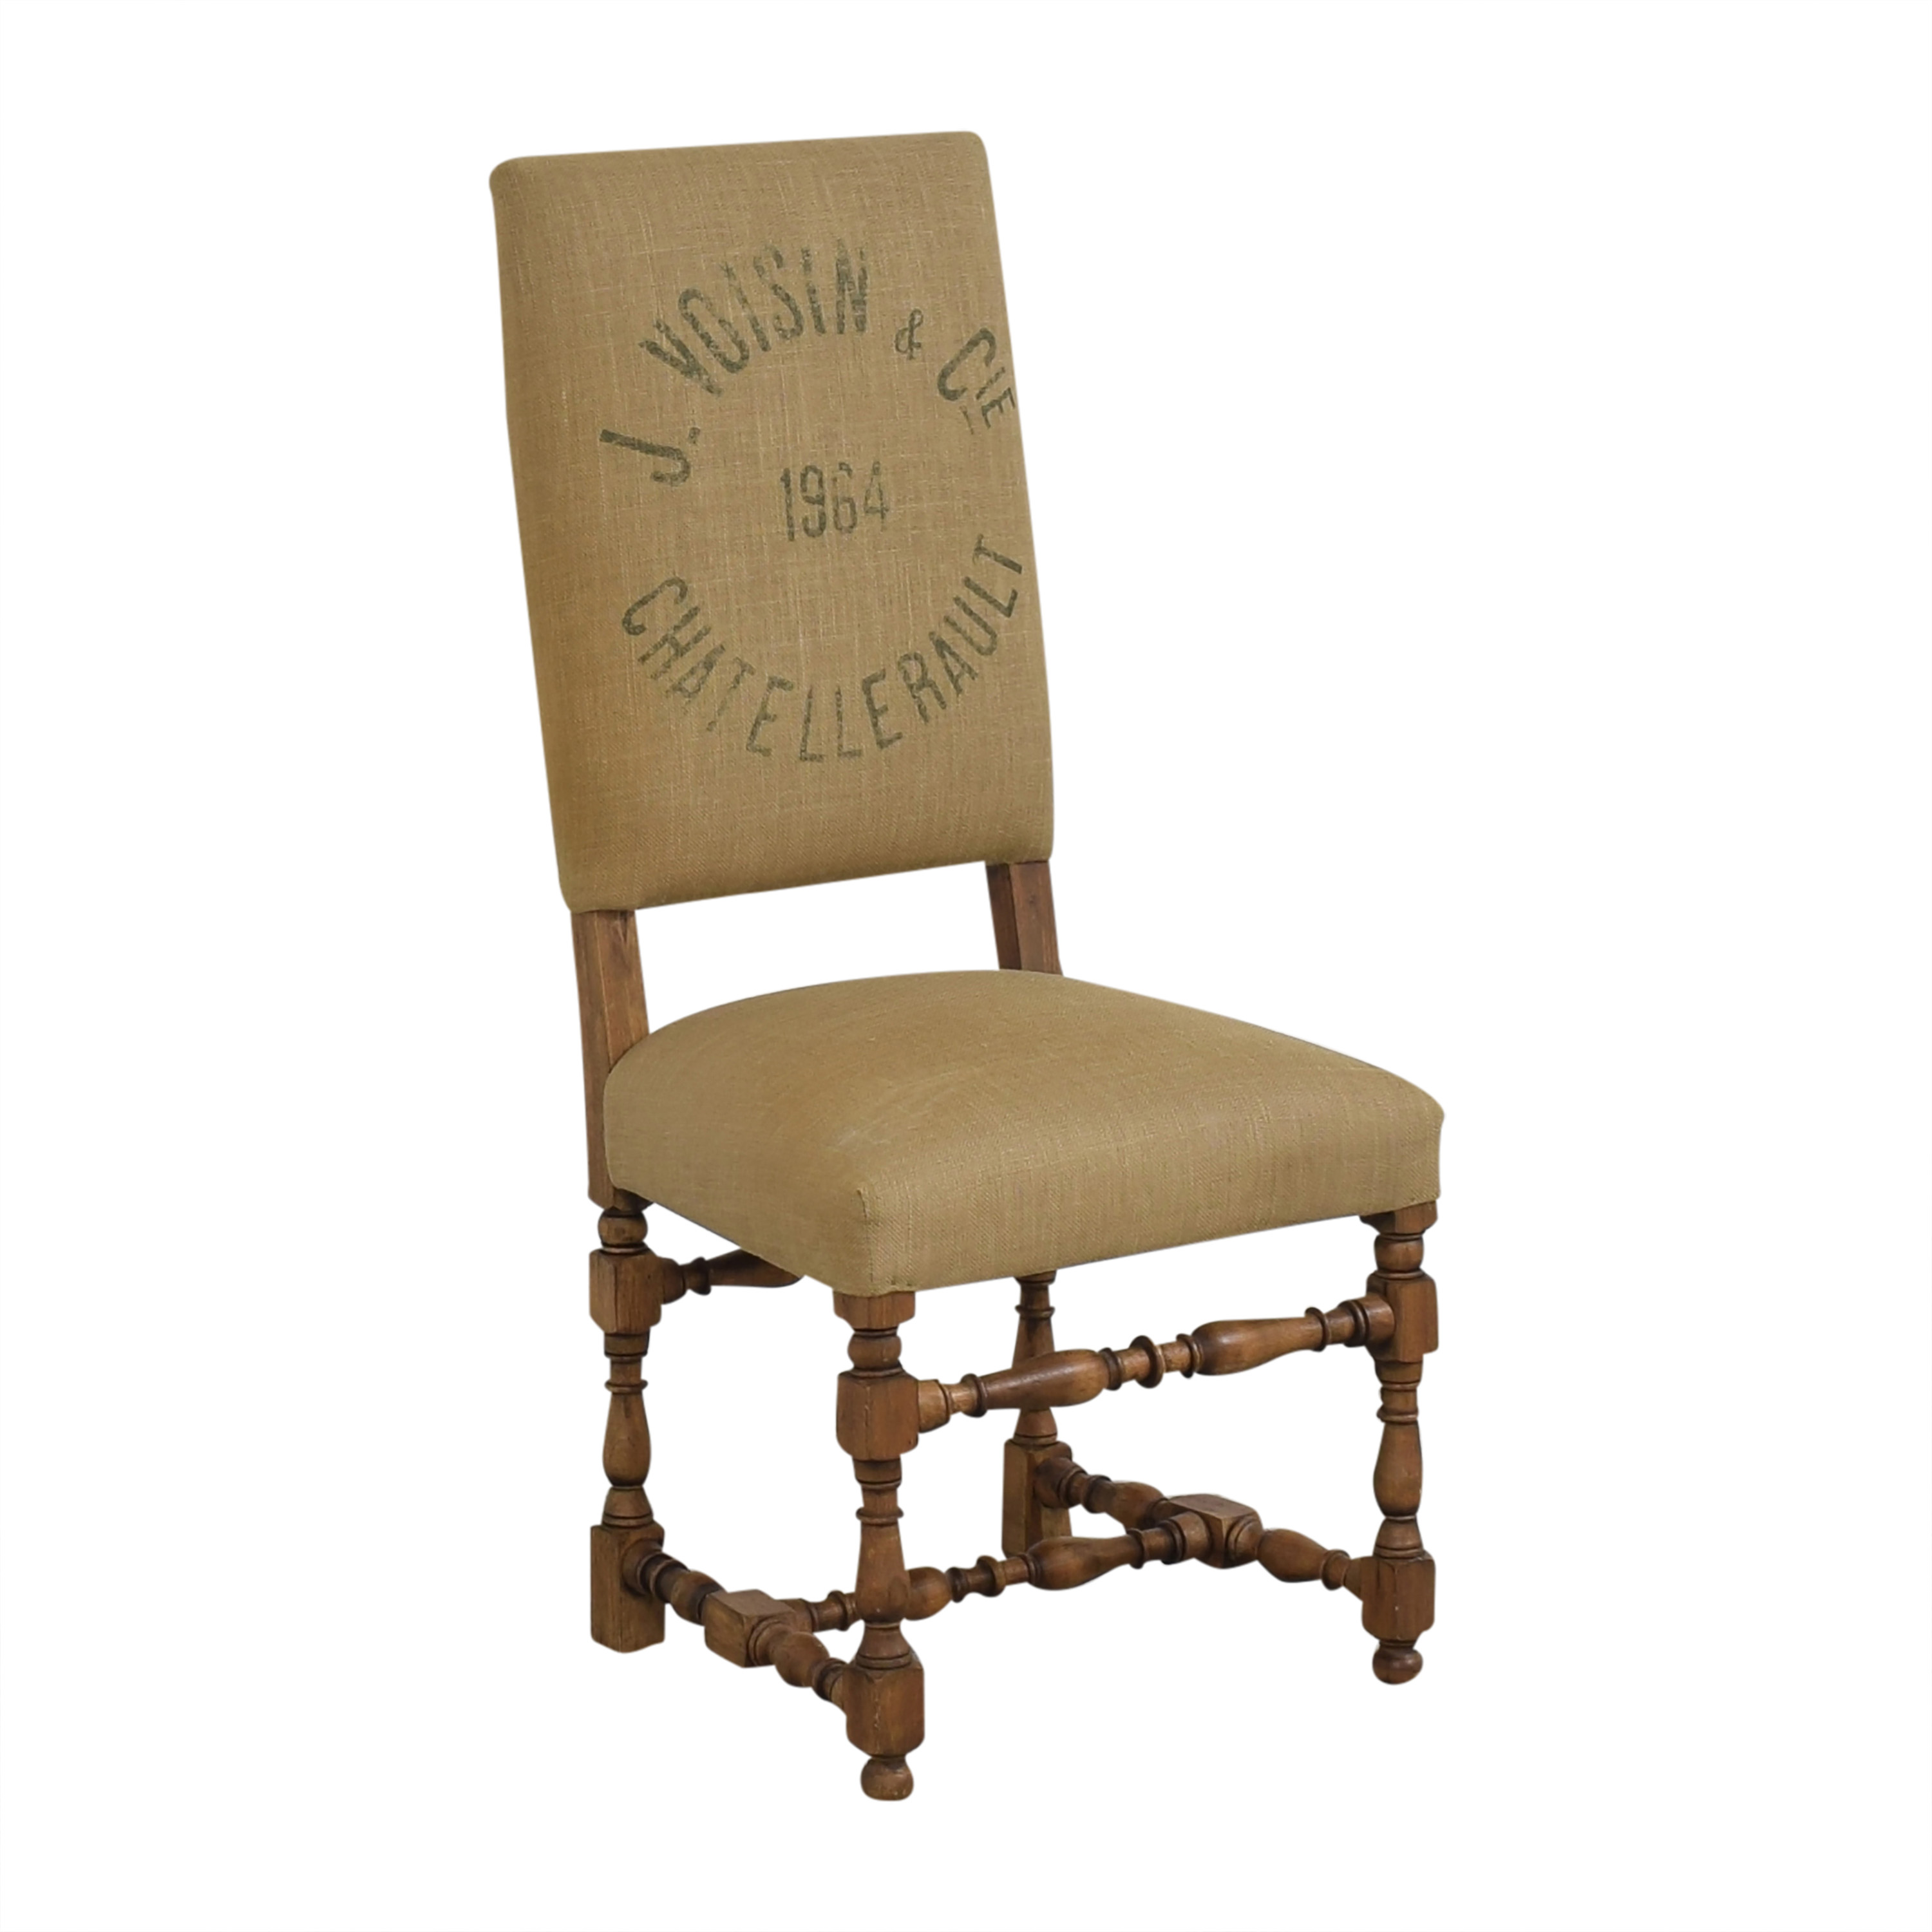 Restoration Hardware Restoration Hardware 1890 English Baroque Side Chair nyc